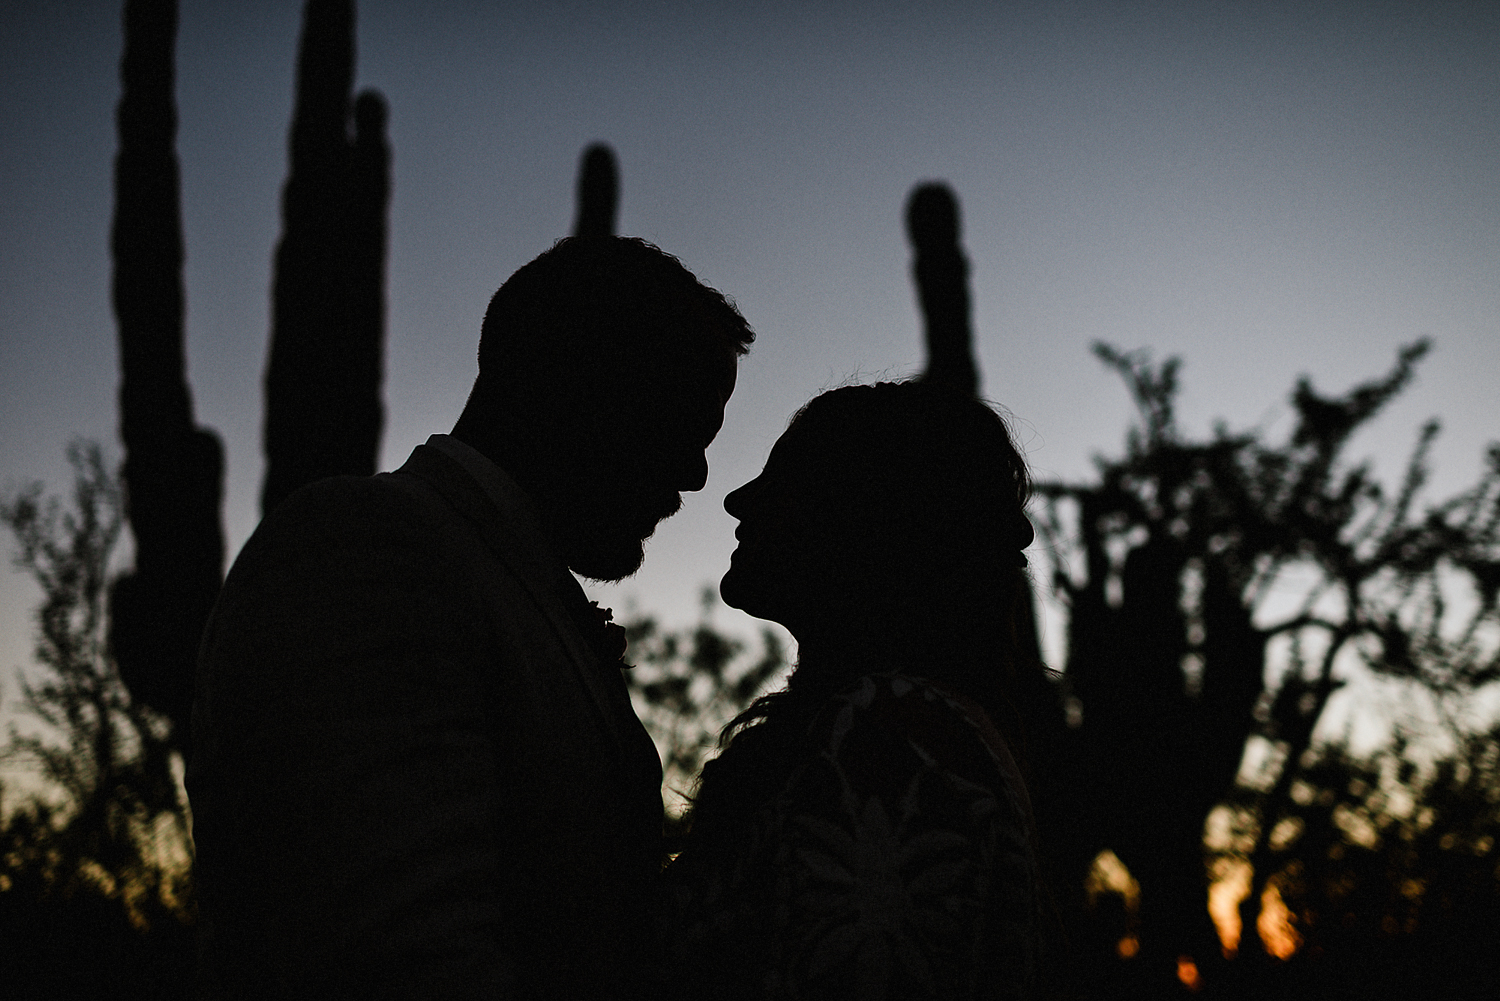 destination-wedding-cabo-san-lucas-ventanas-private-residence-alternative-toronto-wedding-photographer-documentary-photojournalistic-portraits-bride-and-groom-portraits-intimate-real-moments-timeless-romantic-images-moody-silhouette.jpg